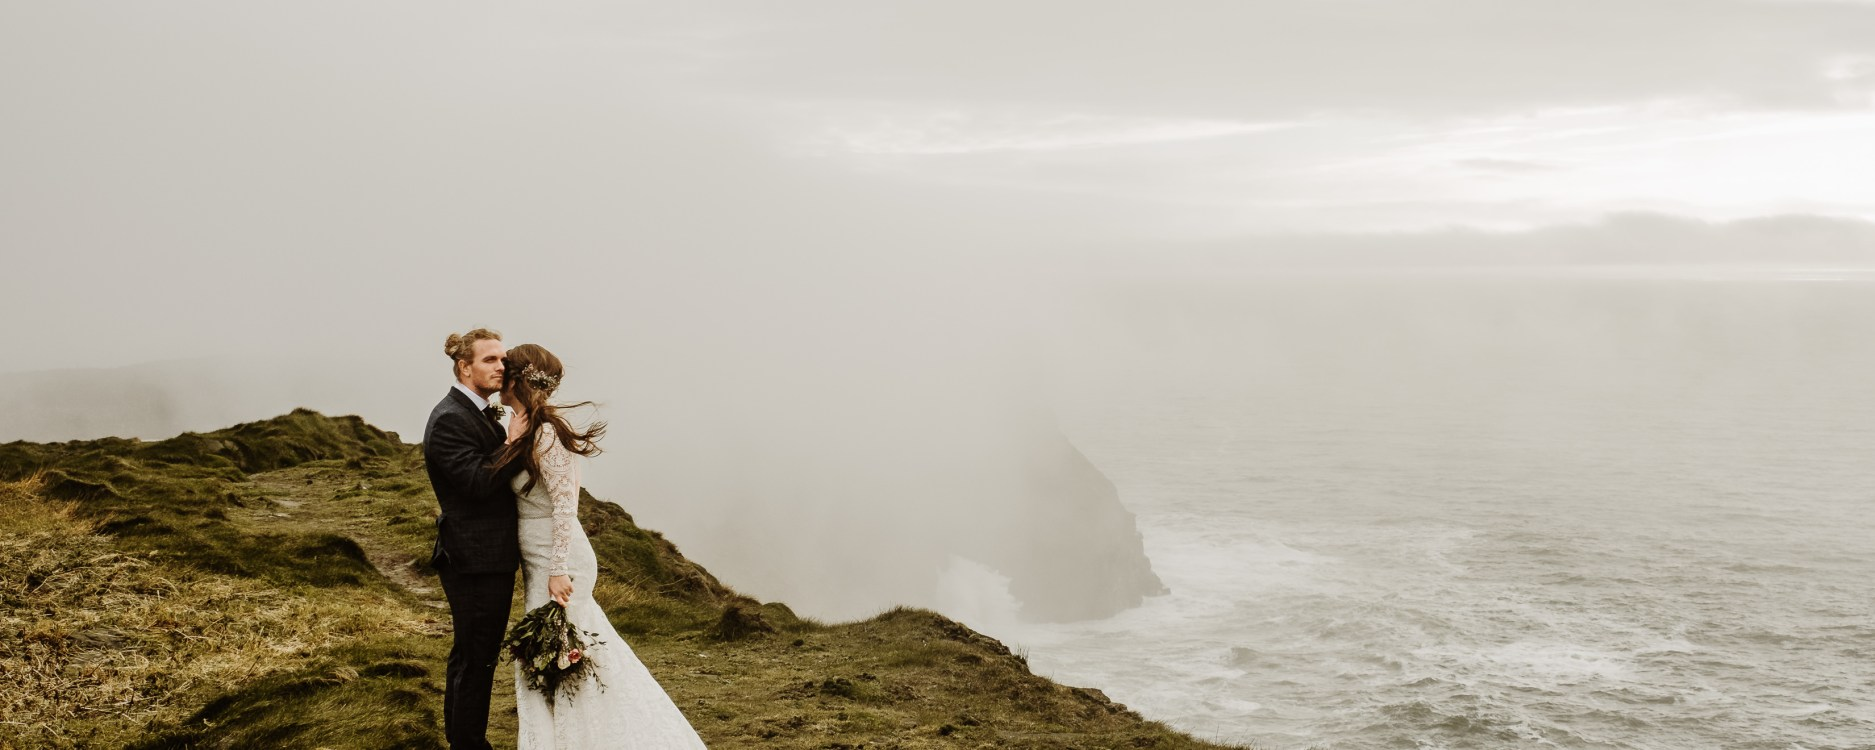 An Irish elopement in Europe by adventure wedding photographer Wild Connections Photography